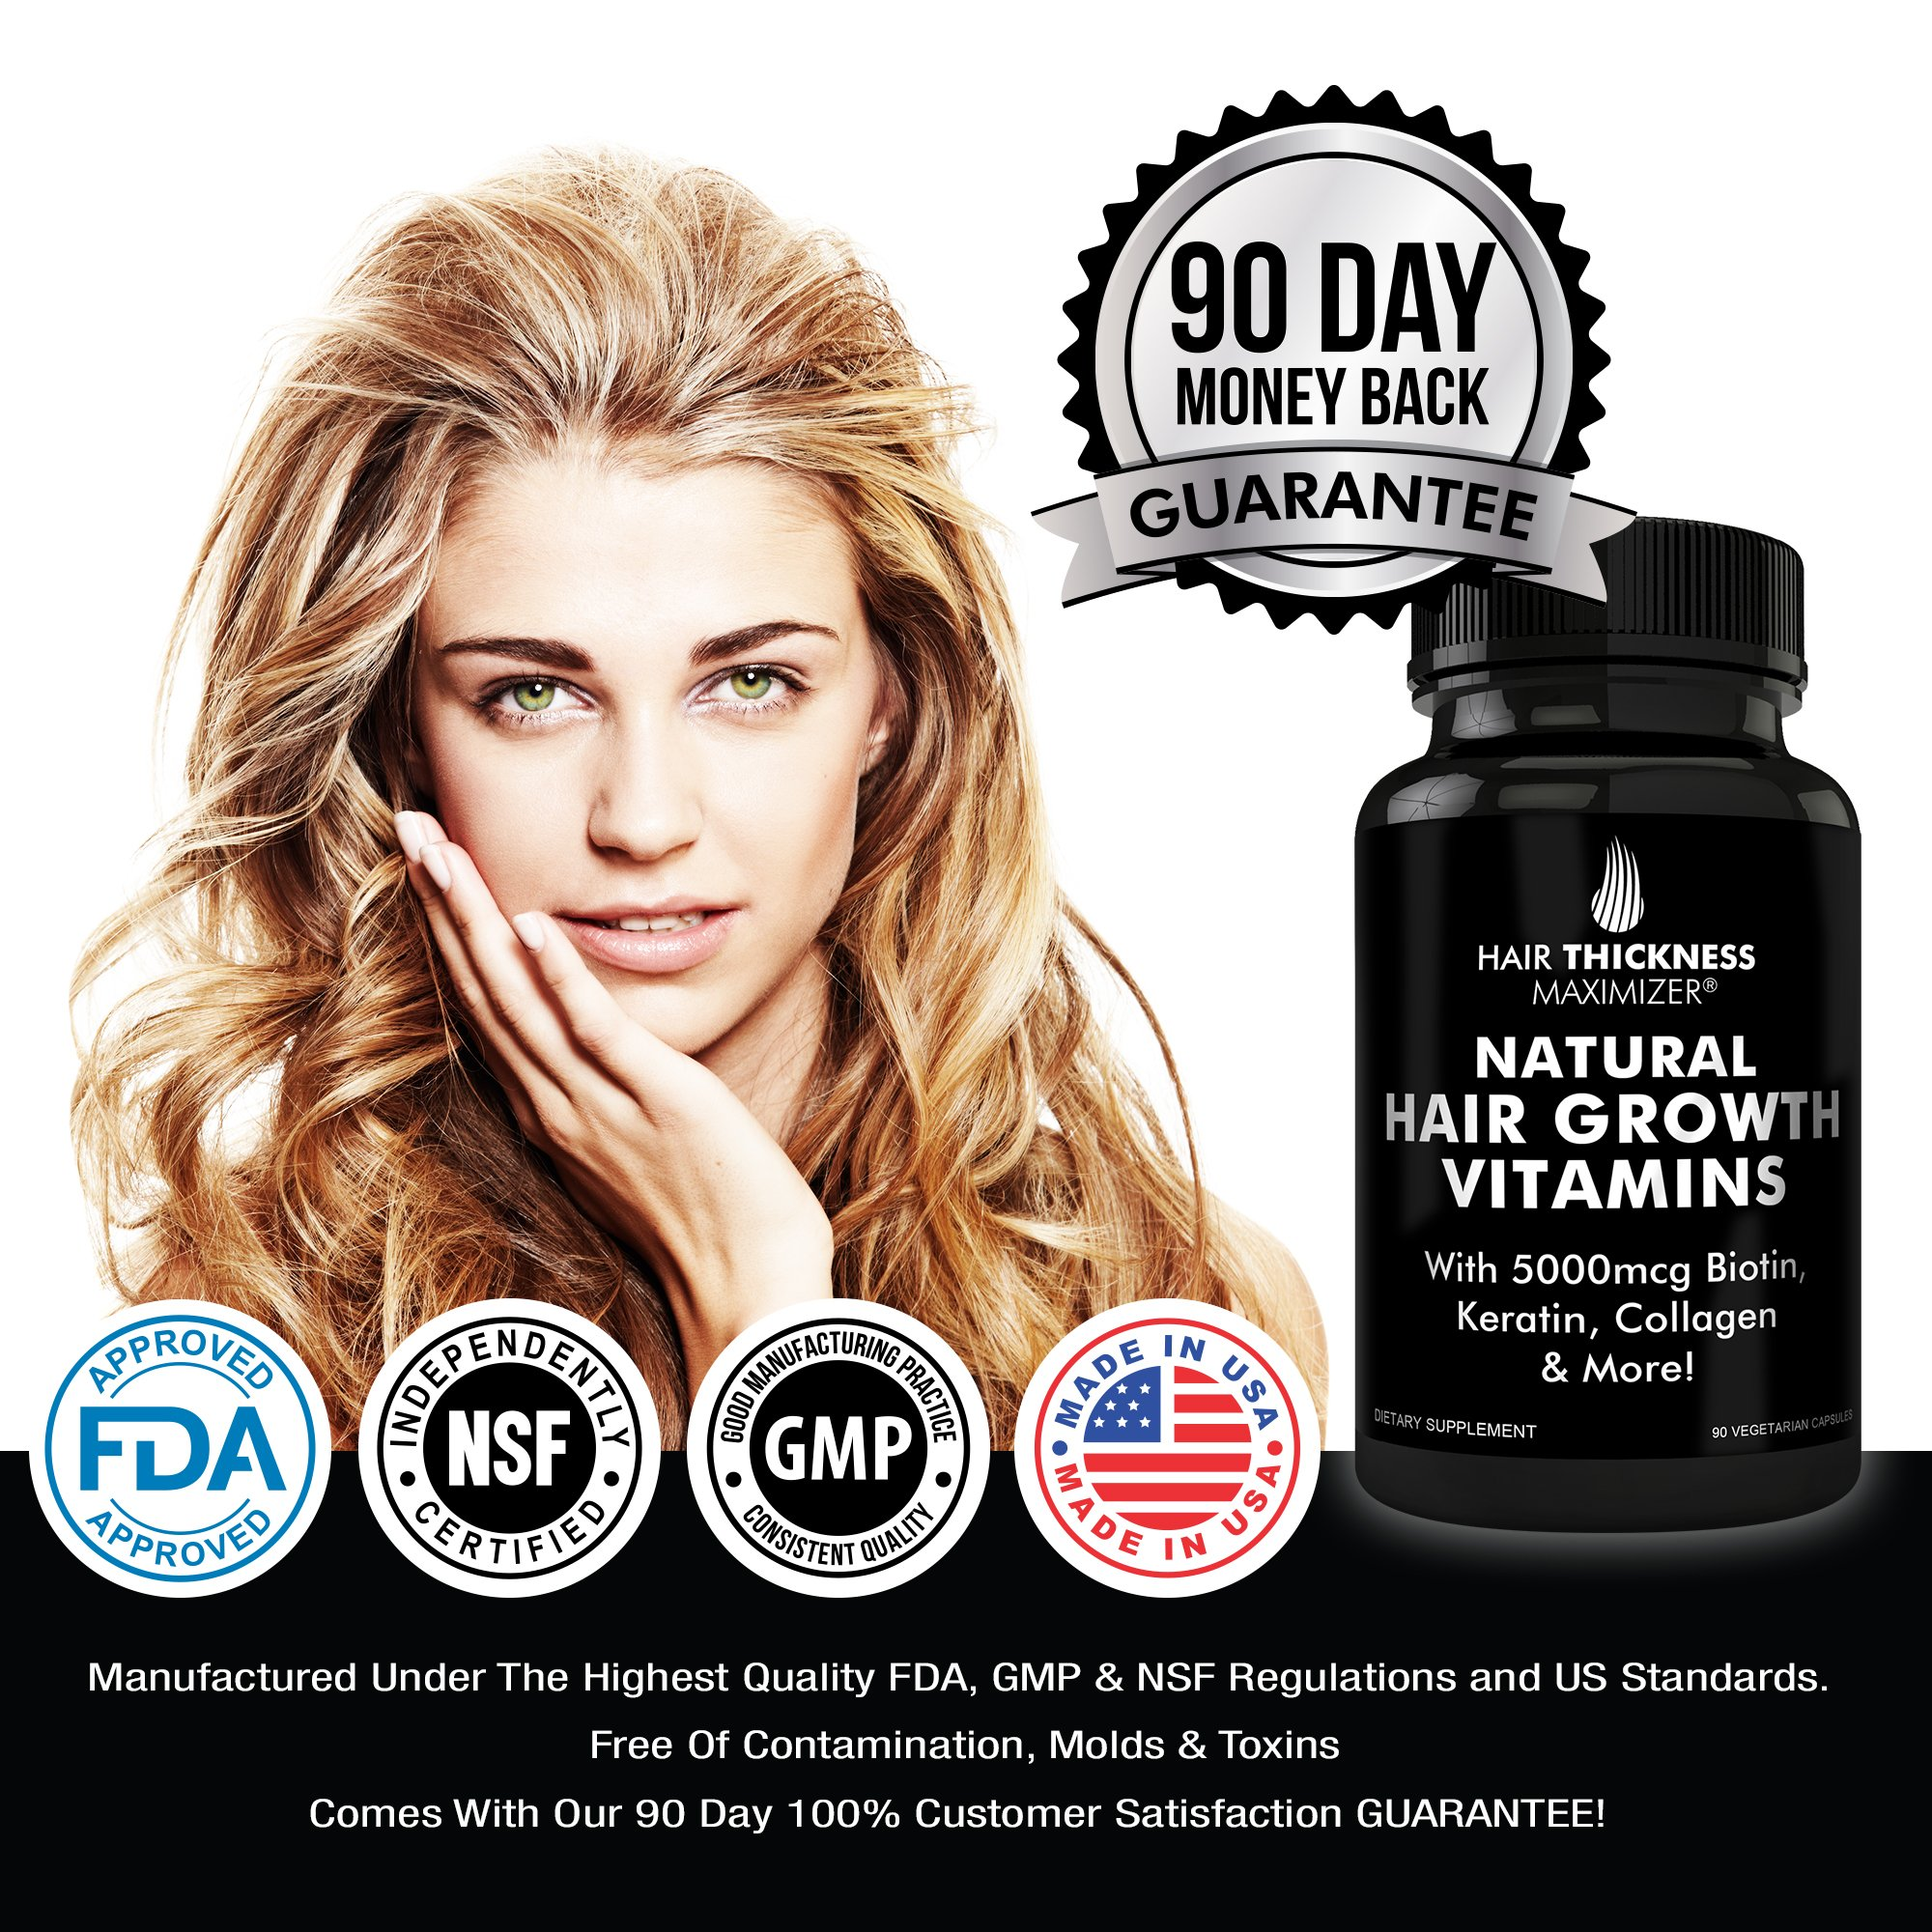 BEST Hair Growth Vitamins GUARANTEED. Stop Hair Loss NOW by Hair Thickness Maximizer. Natural Hair Growth Vitamins for Stronger, Thicker Hair. MADE IN USA. SAFE Vegetarian | With Biotin, Horsetail Ext by Hair Thickness Maximizer (Image #4)